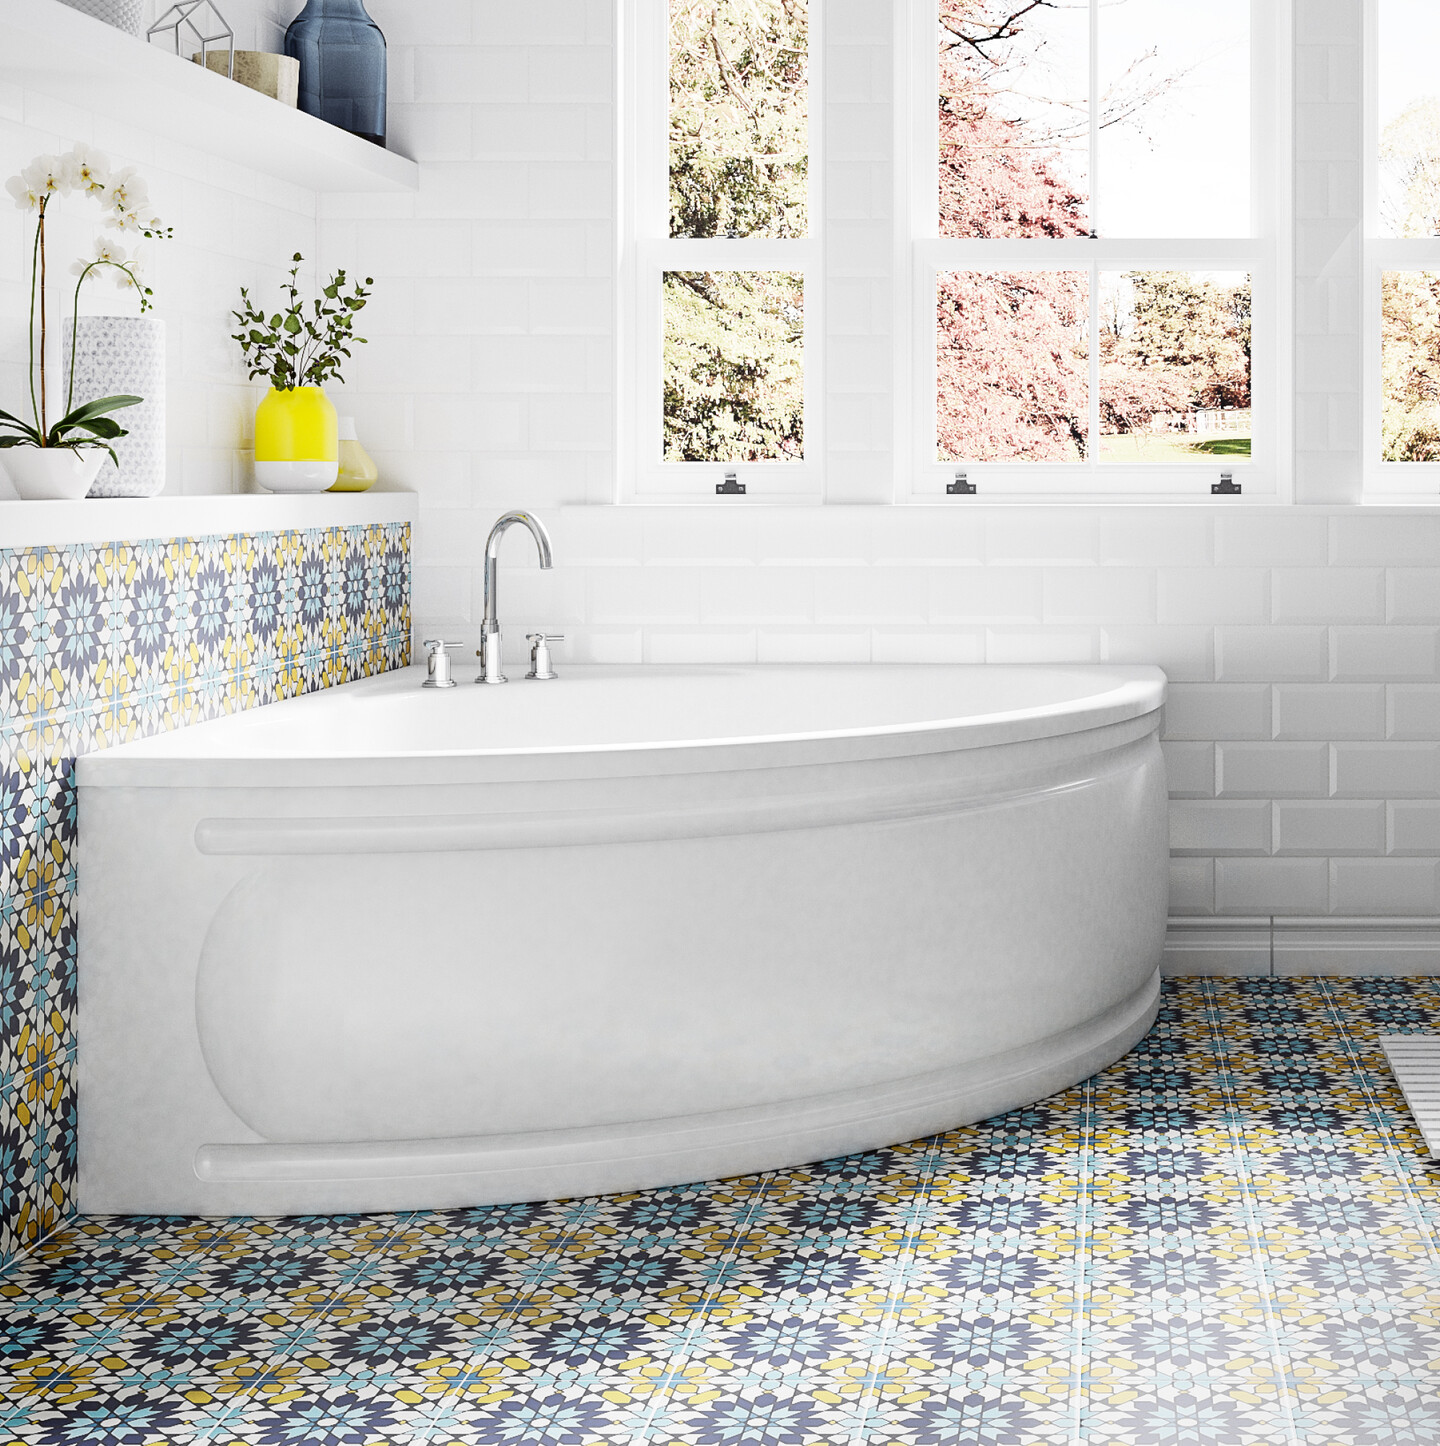 A photo of one of our Baths in a tiled bathroom